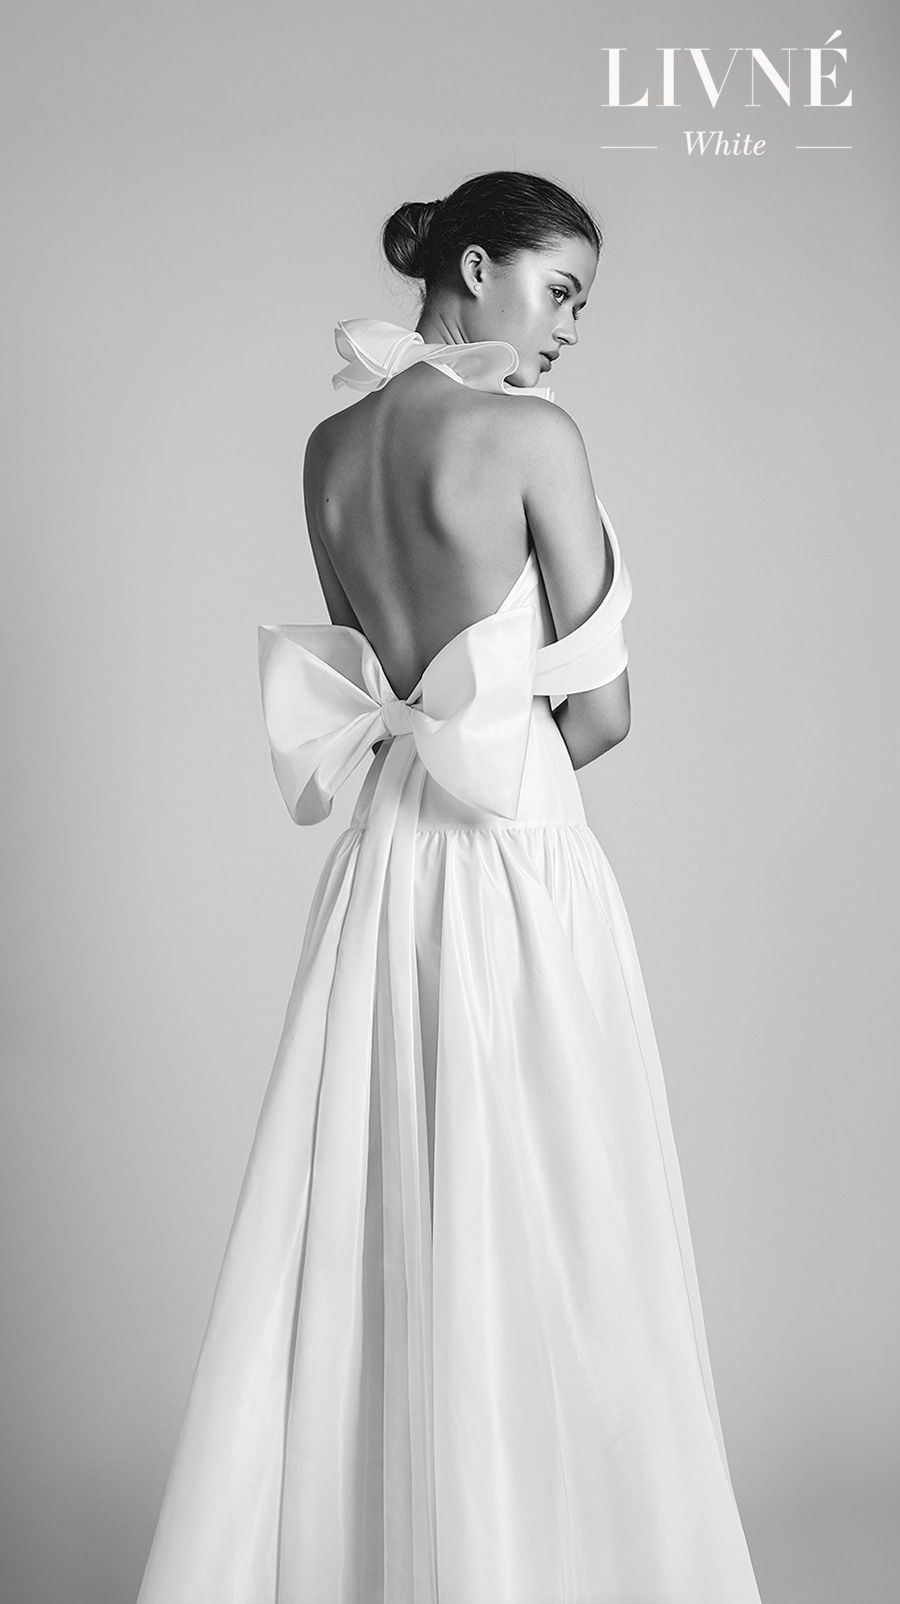 Livné white wedding dresses are perfect for the modern bride in